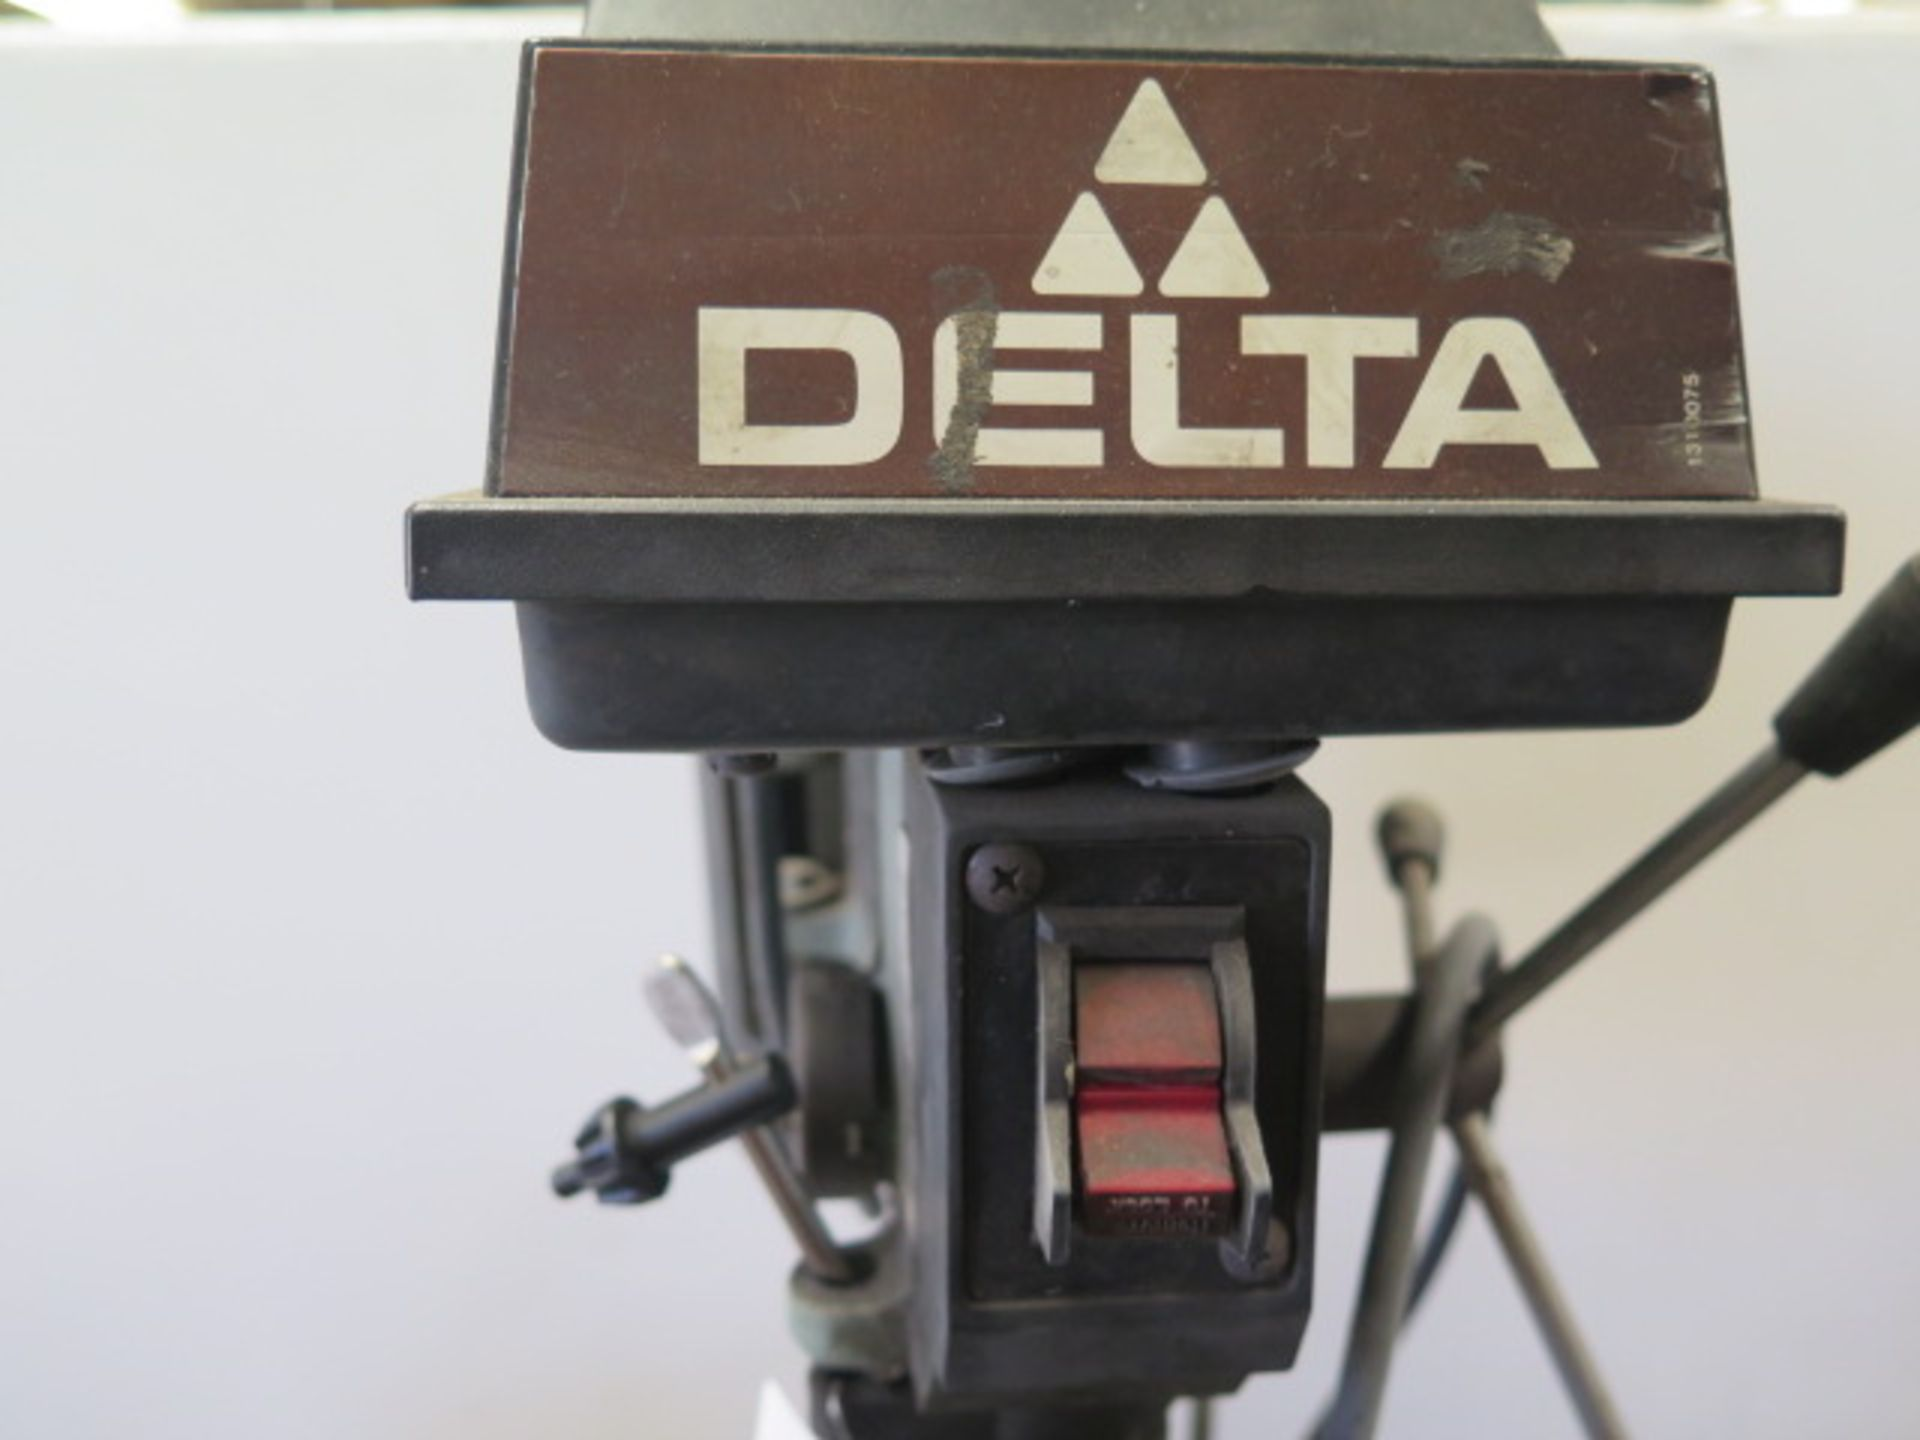 Delta Table Model Drill Press (SOLD AS-IS - NO WARRANTY) - Image 3 of 6